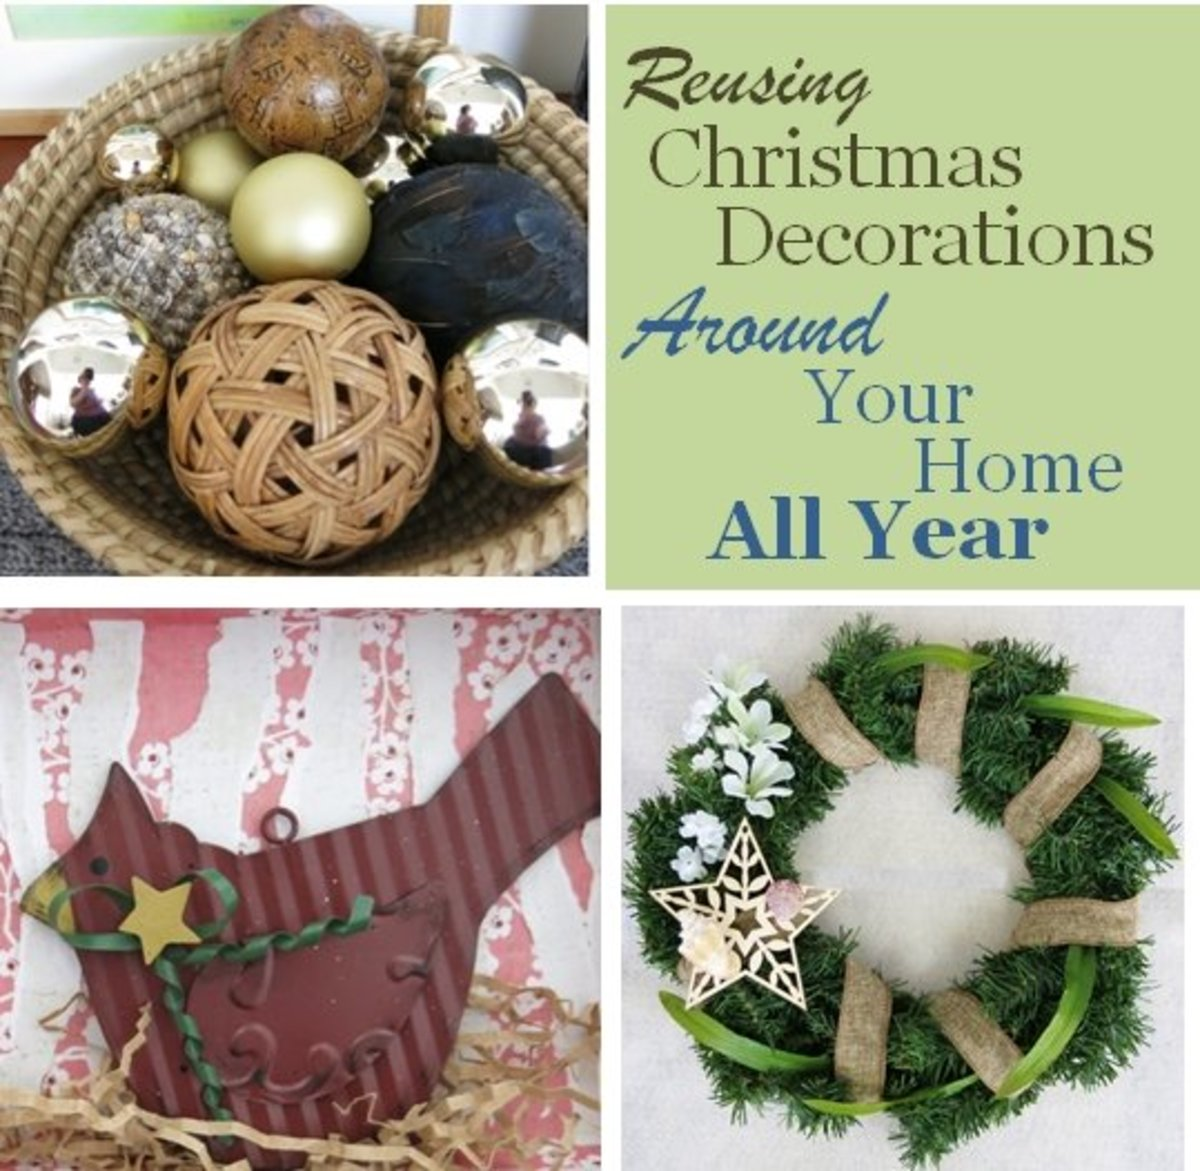 How to Reuse and Repurpose Christmas Decorations in Your Everyday Decor